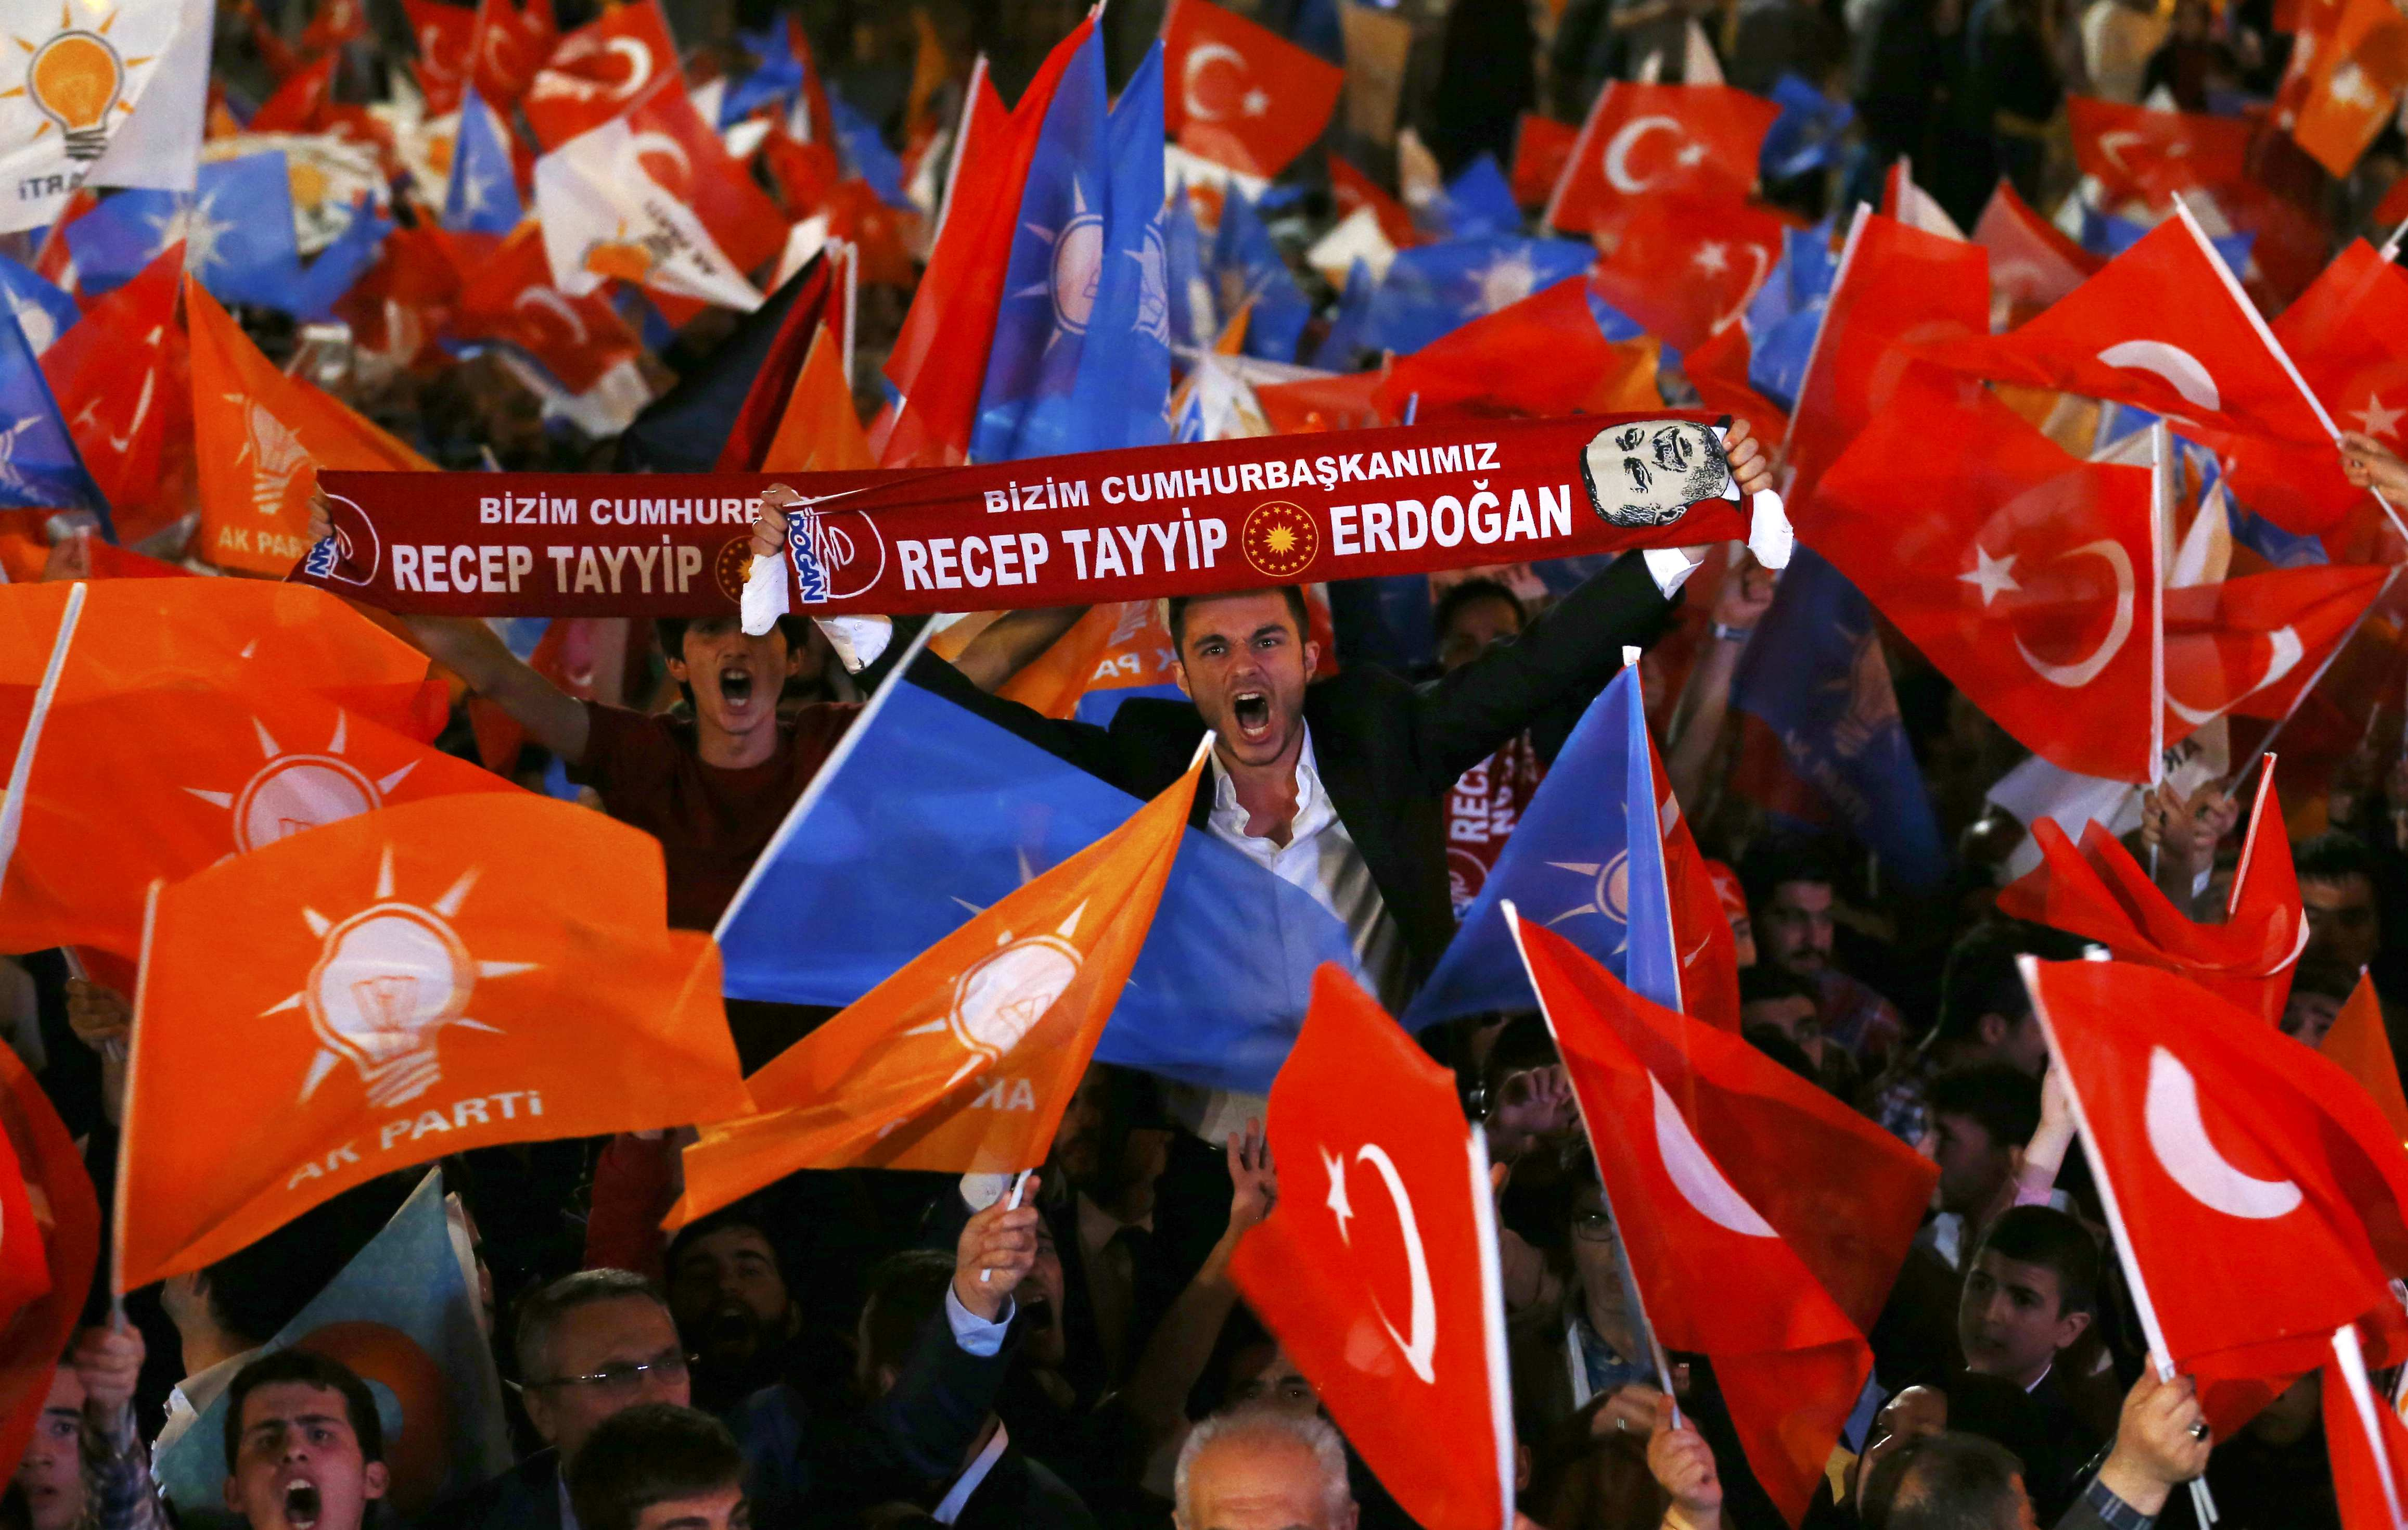 Turkey elections the focus of discussion in Nicosia